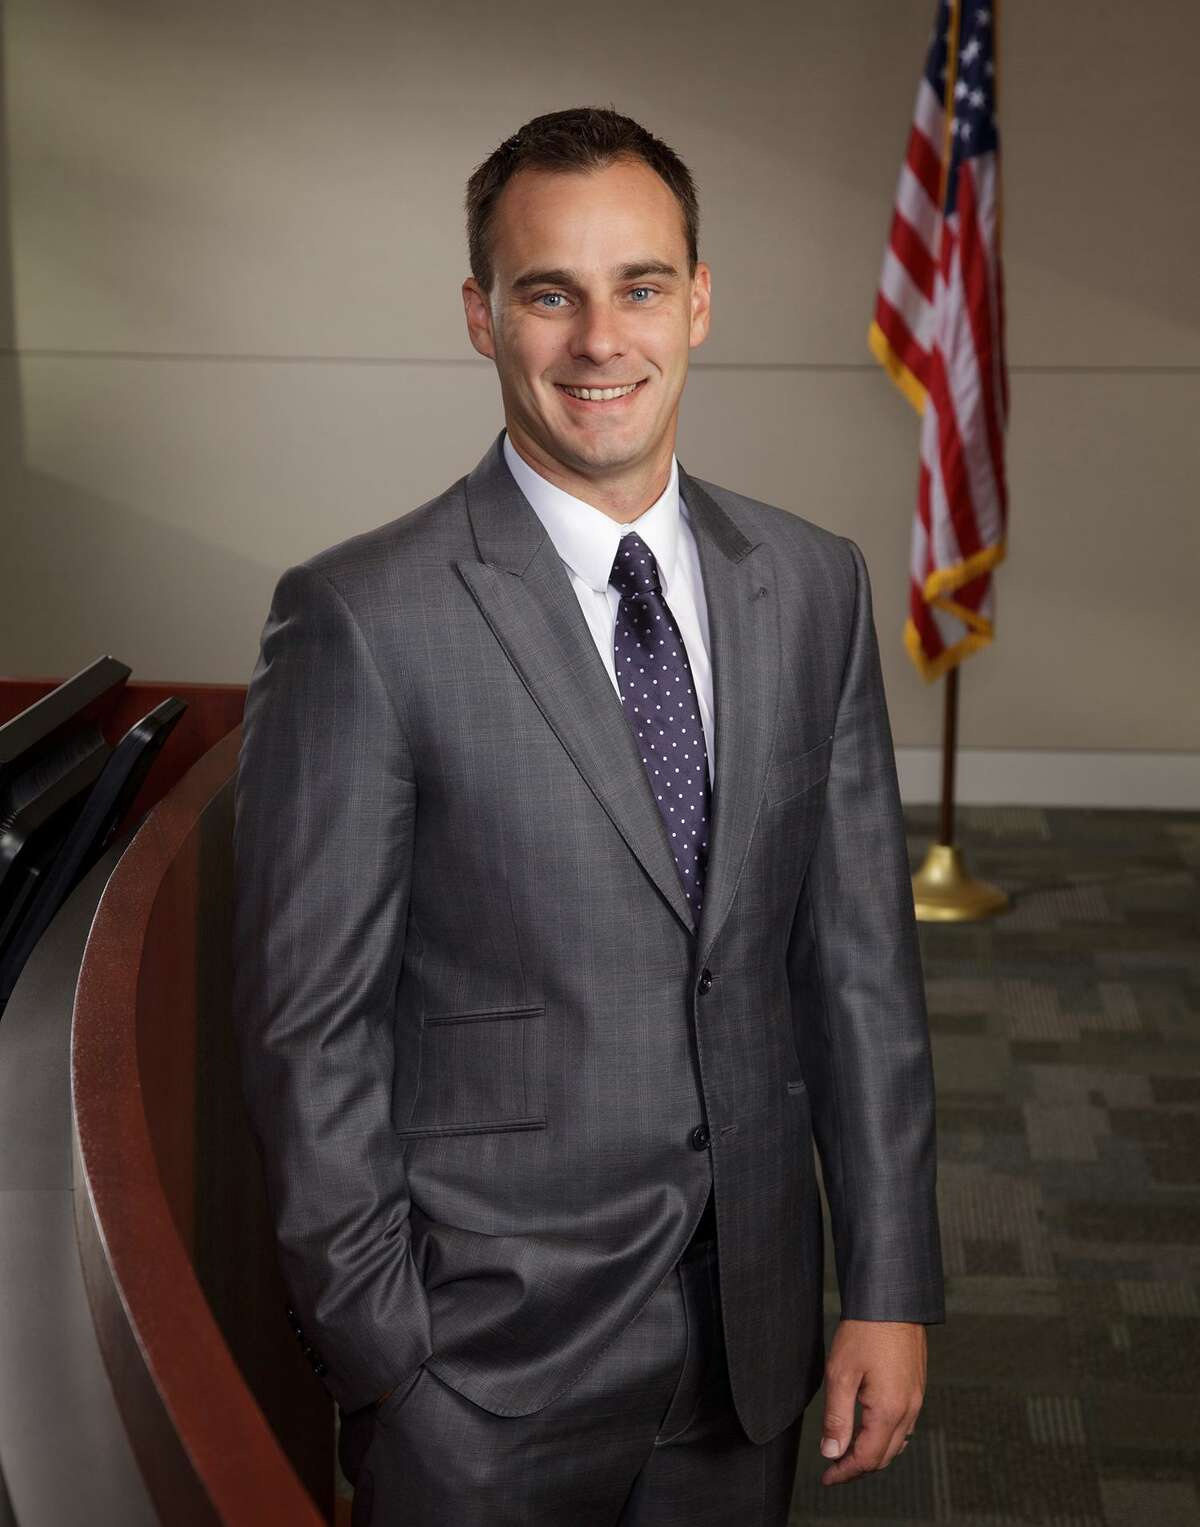 Kyle Scott, who served one term on the Lone Star College board of trustees, attended LSC when it was called North Harris County College, and later studied at The University of Texas in Austin and the University of Houston before teaching government classes at several different universities.